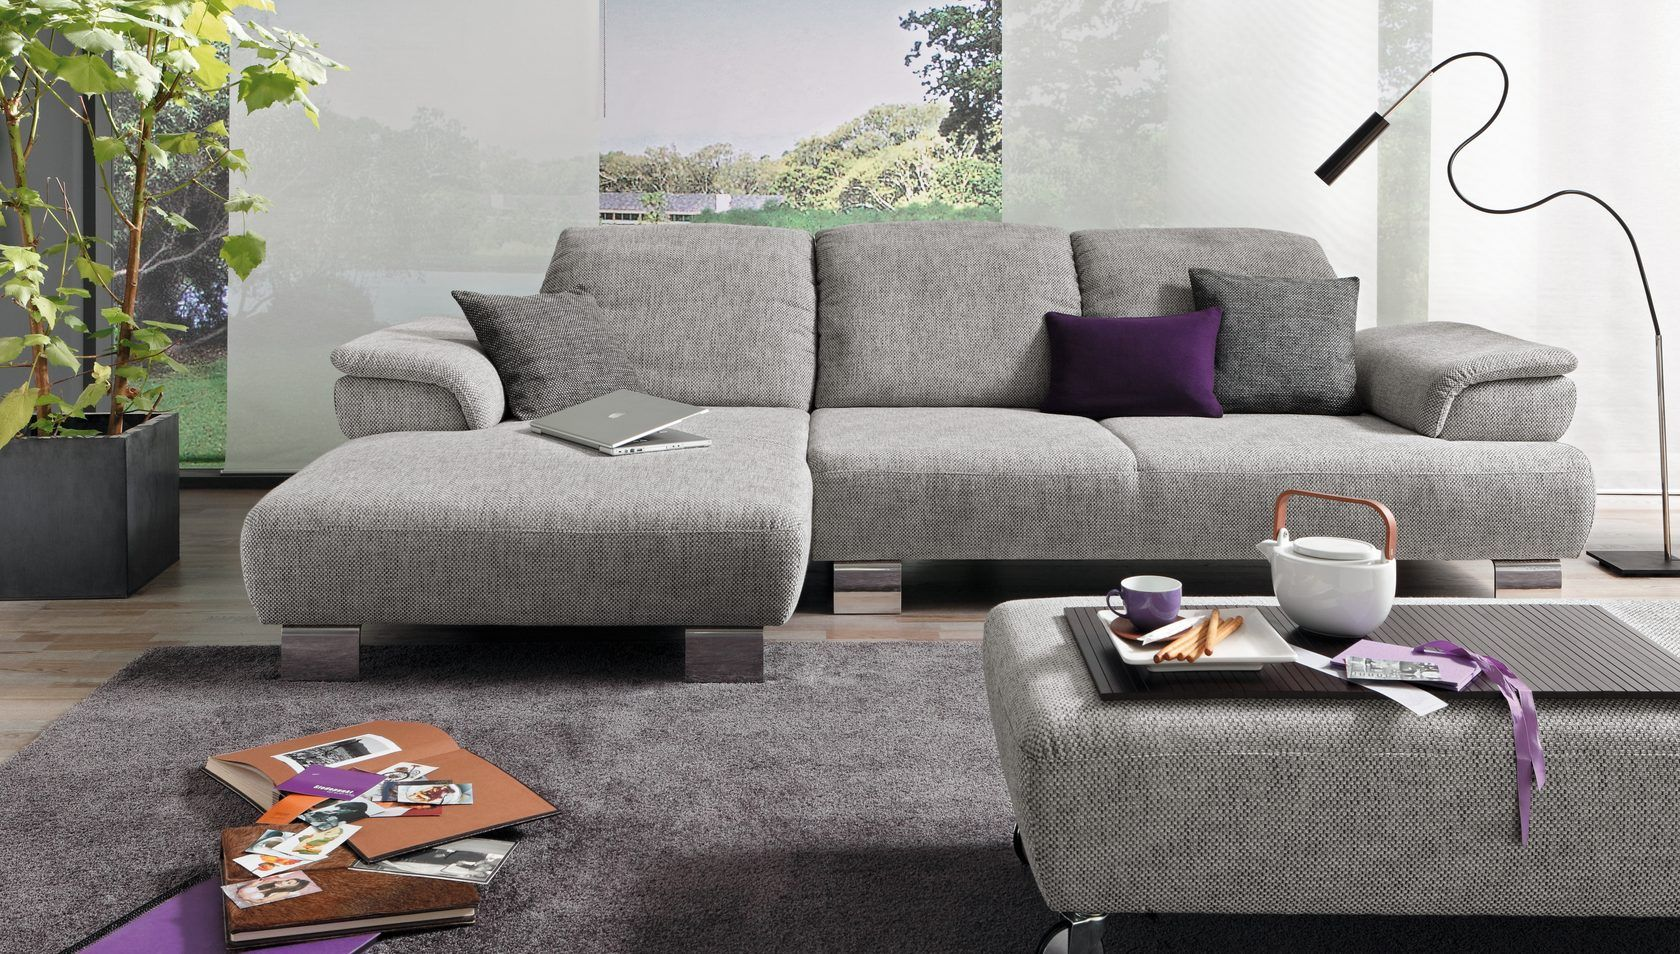 mr 2330 polsterm bel polsterm bel wohnwelten musterring international sofa pinterest